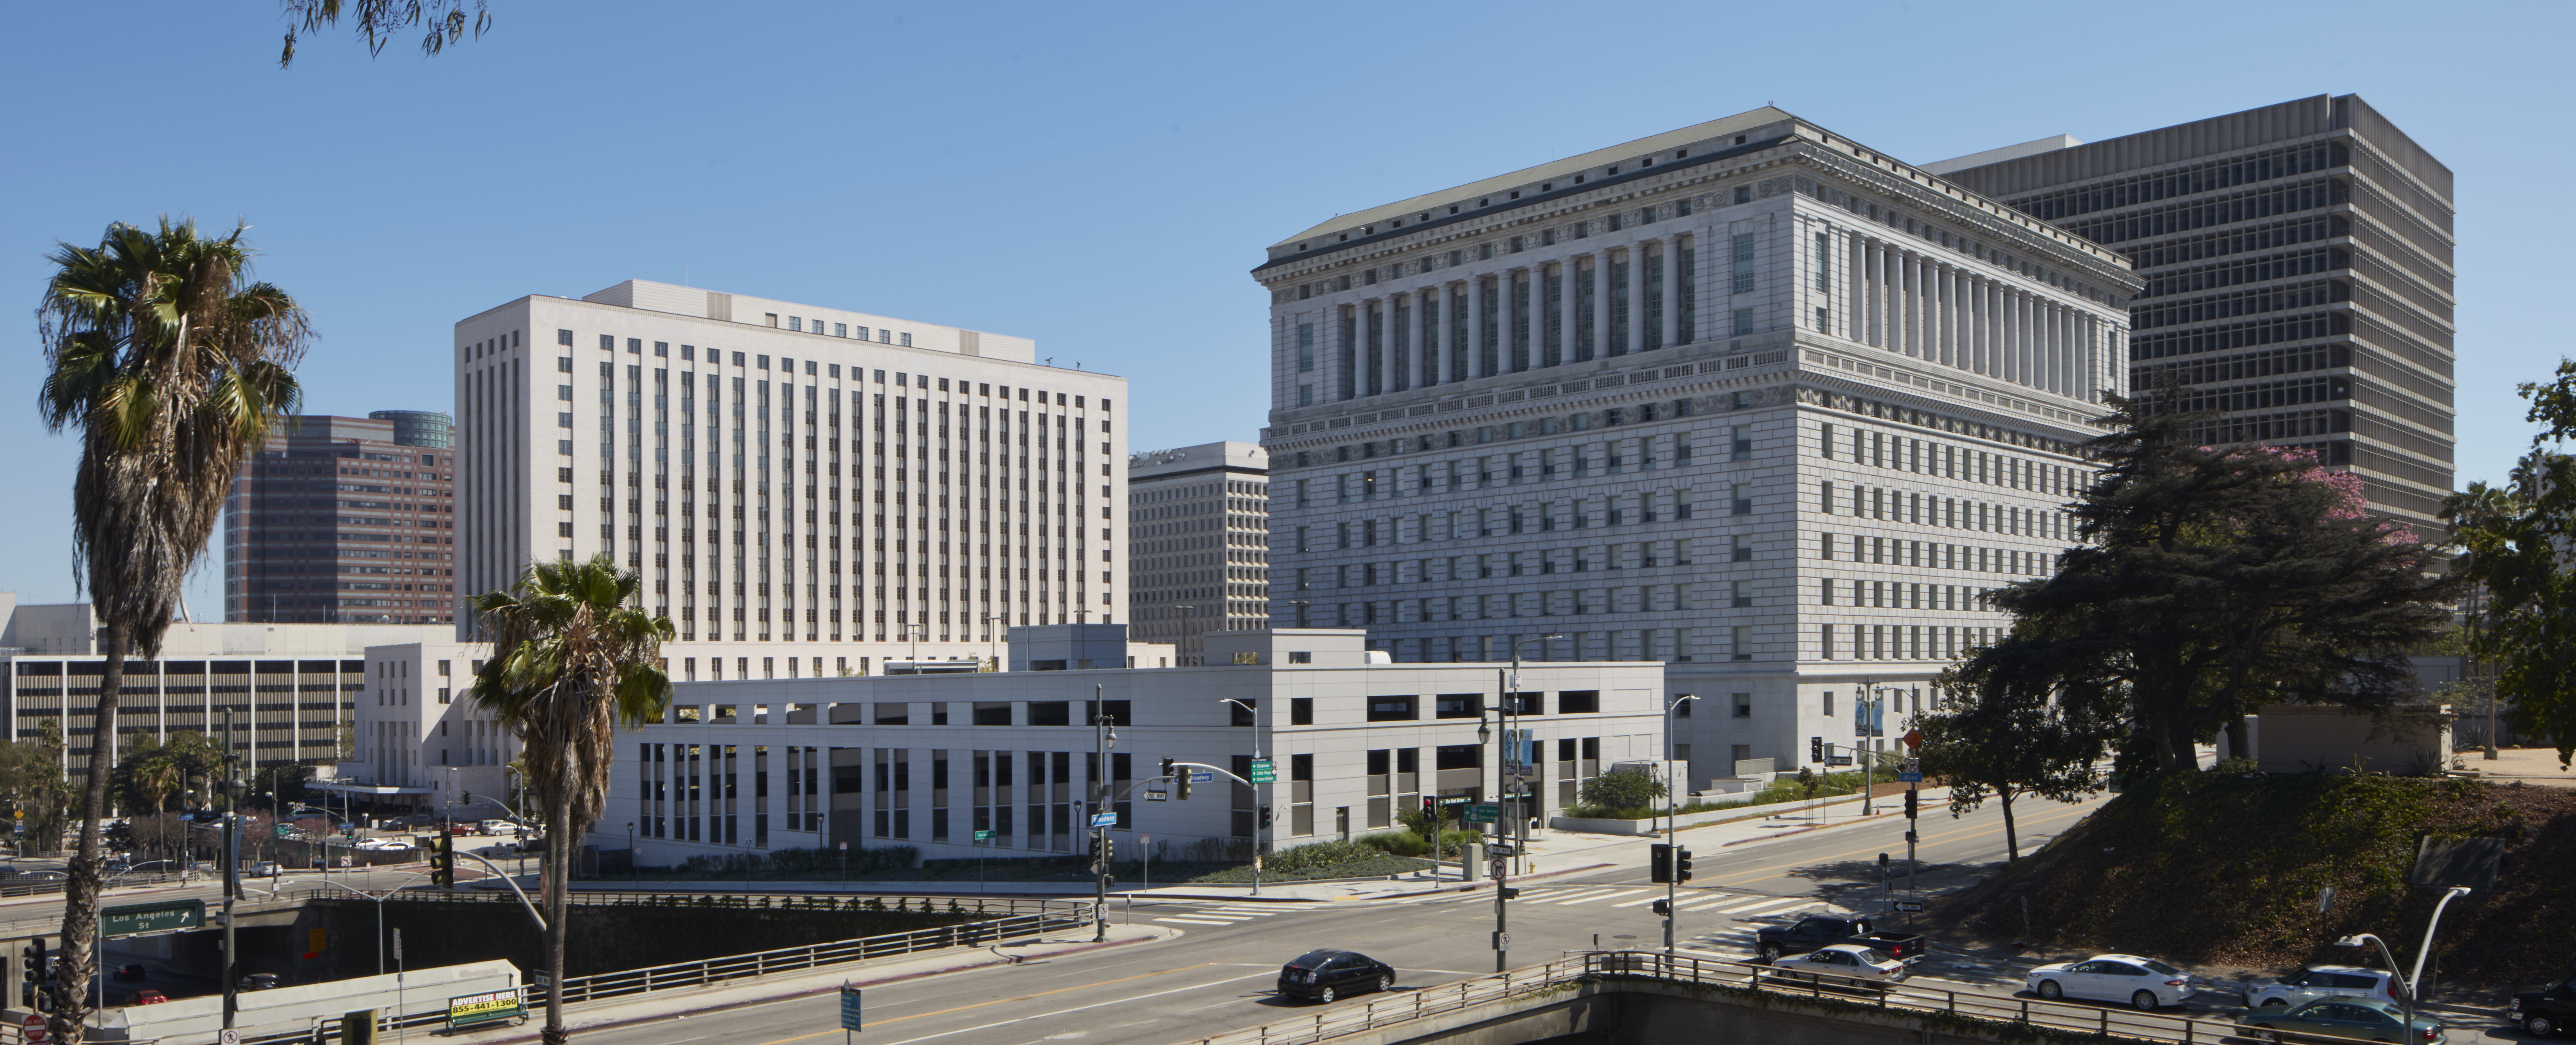 L.A. Hall of Justice